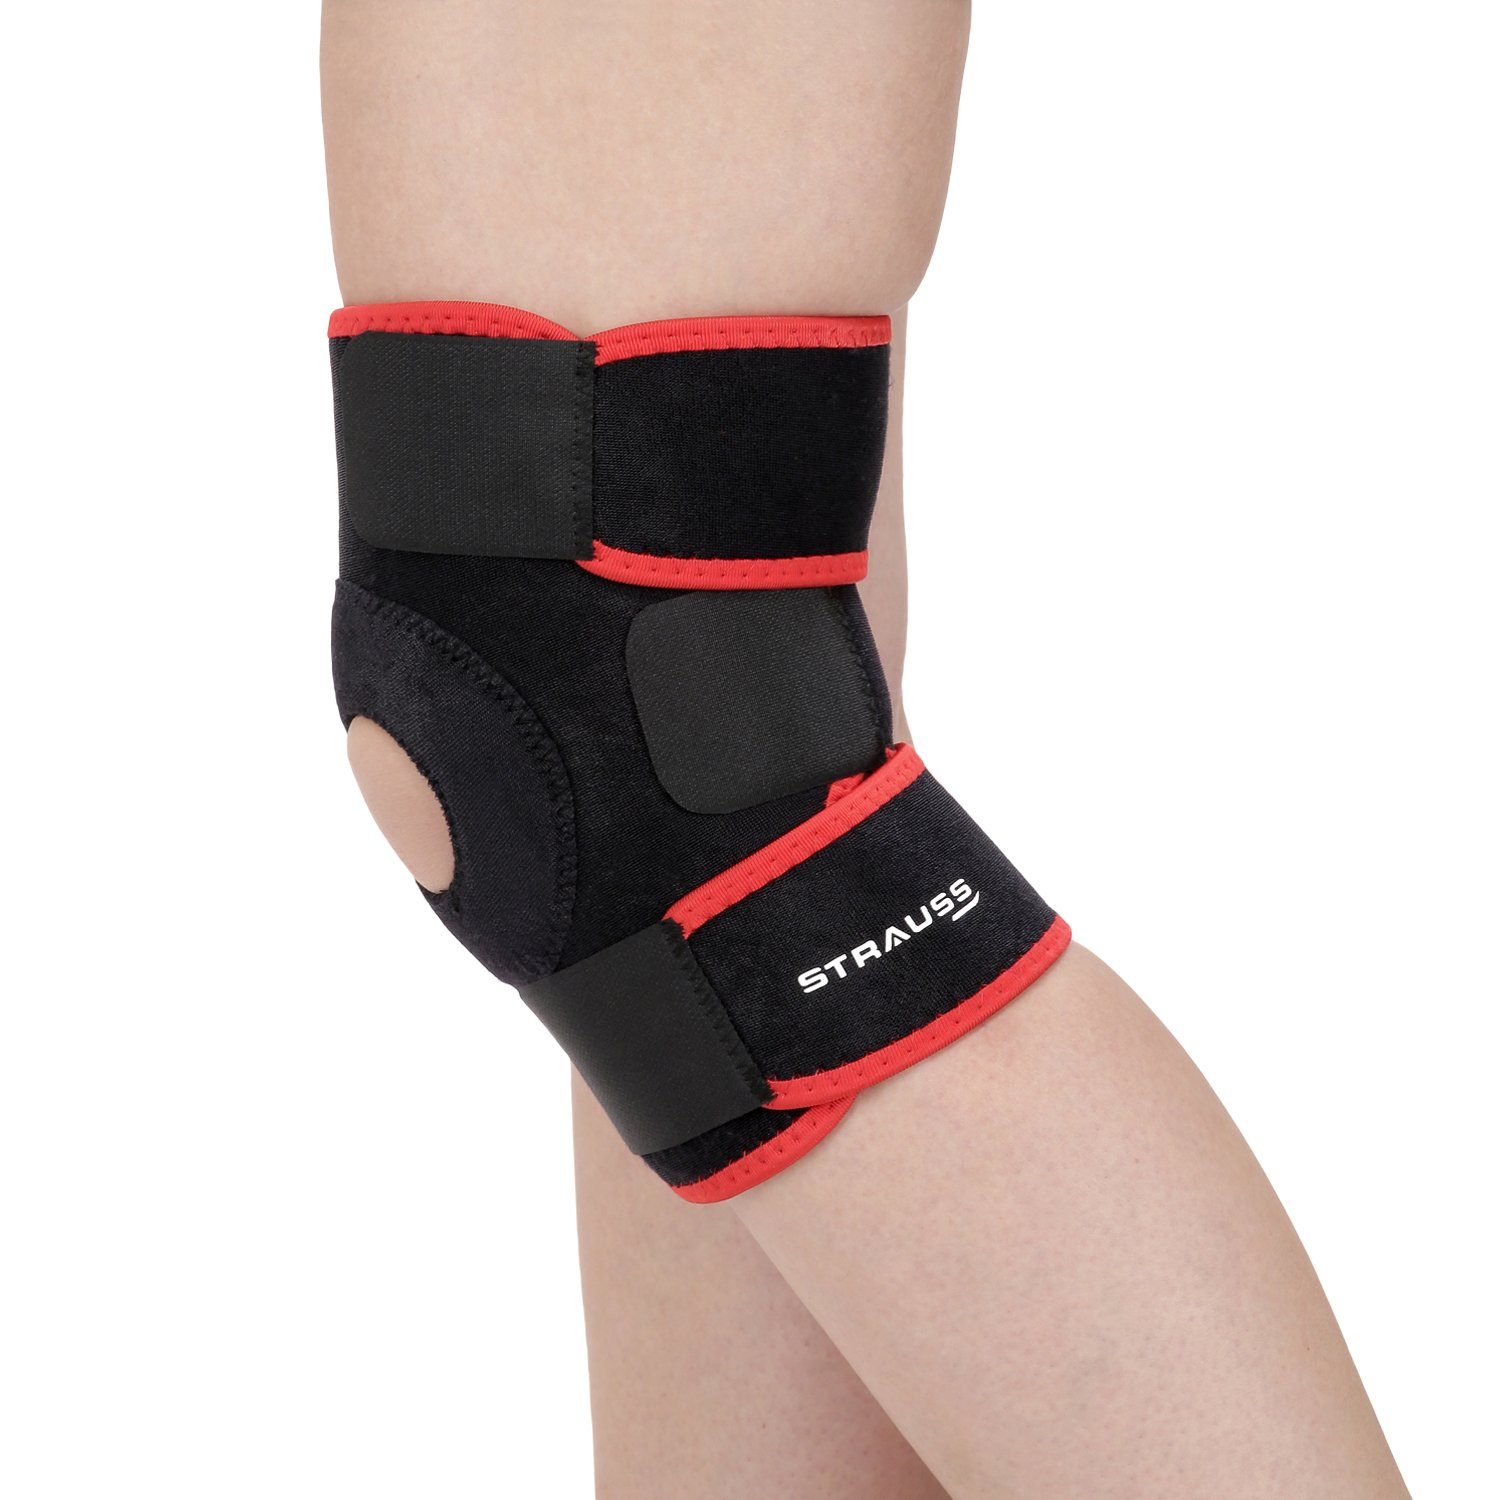 Exercise Fitness Buy Gym Equipments Online At Best Magnetic Trimmer Jogging Body Plate Waist Twisting Strauss Adjustable Knee Support Patella